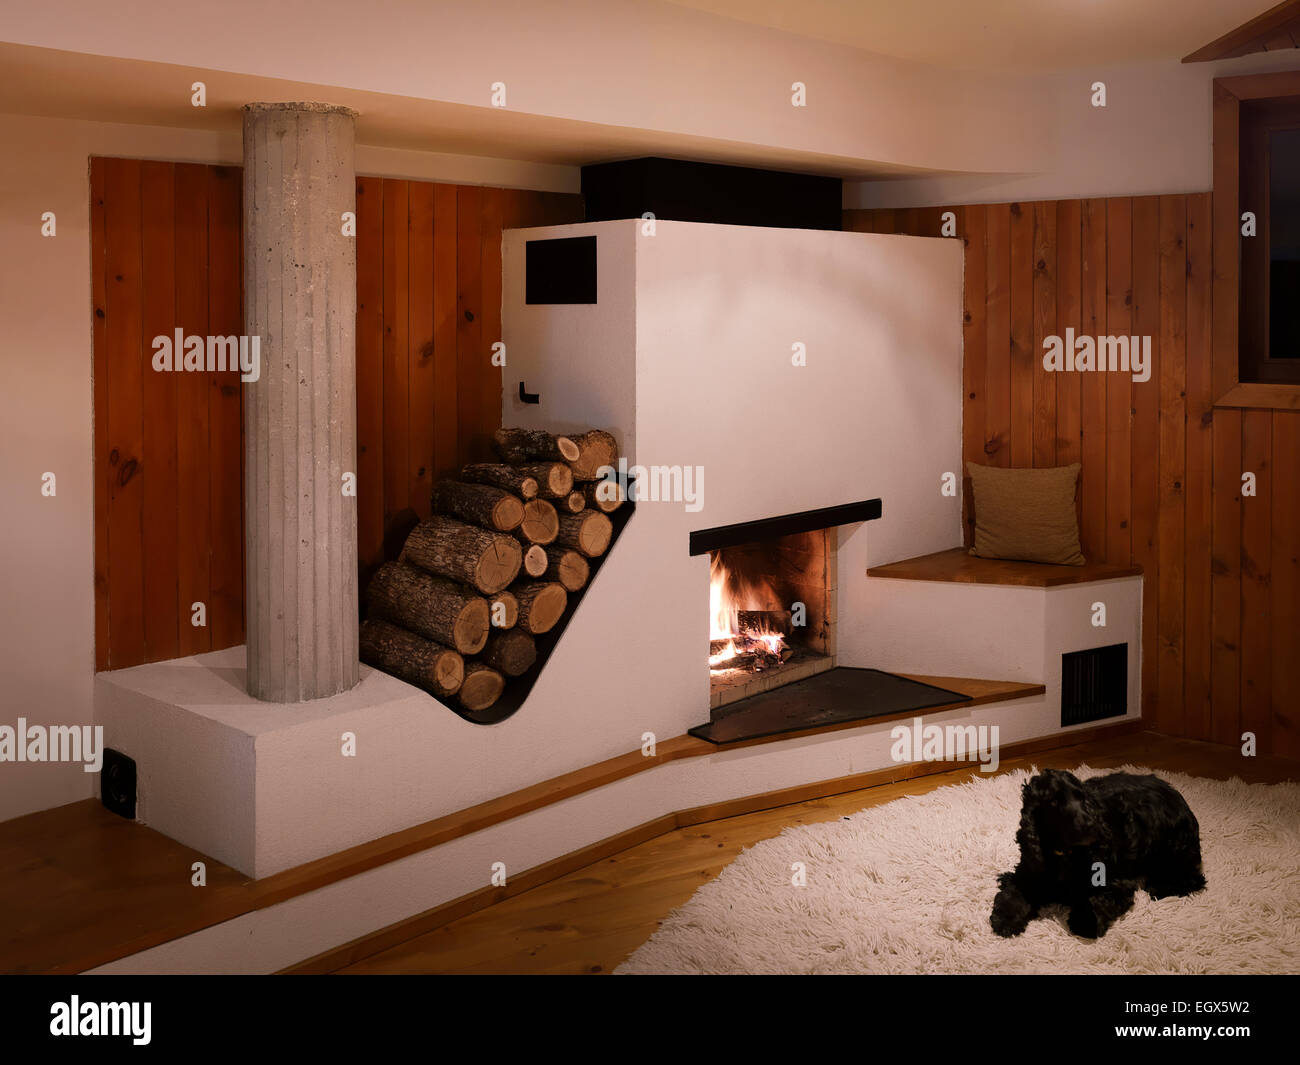 Fireplace with log storage in wood panelled living room